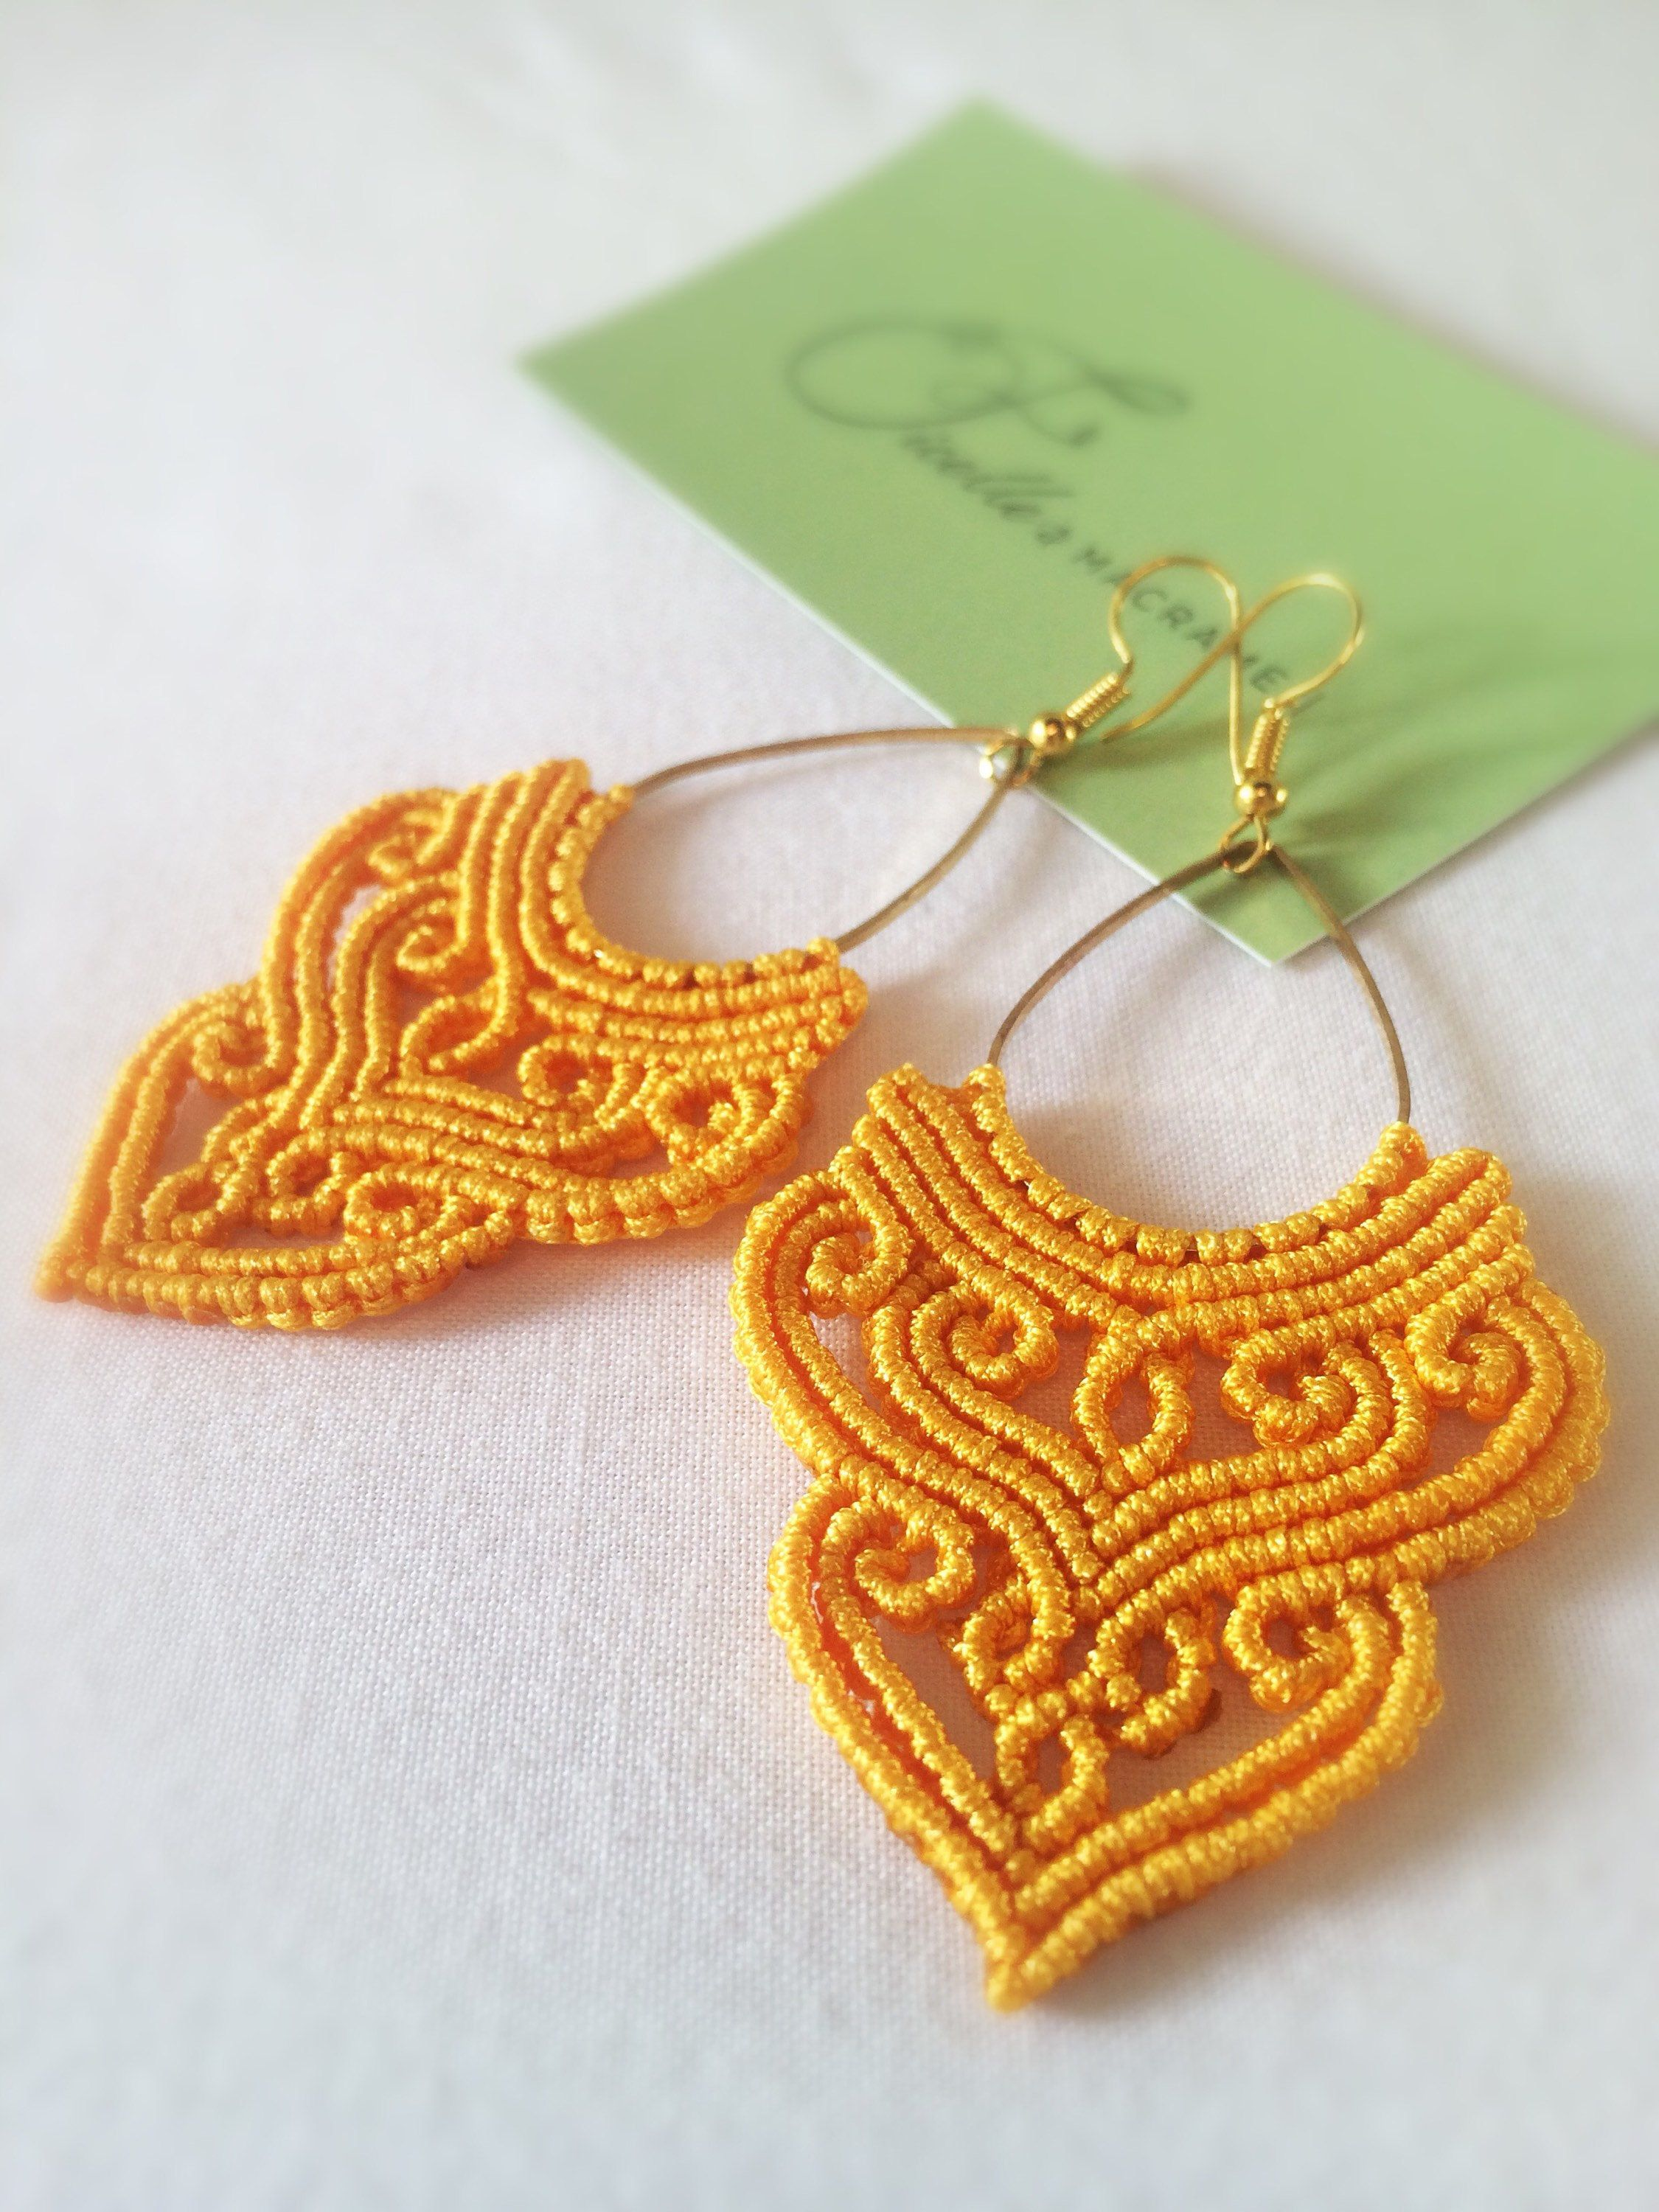 Photo of Silver macrame earrings Golden Yellow Macrame earrings Bright earrings Summer earrings Colorful earrings Birthday gift Valentine's Day gift